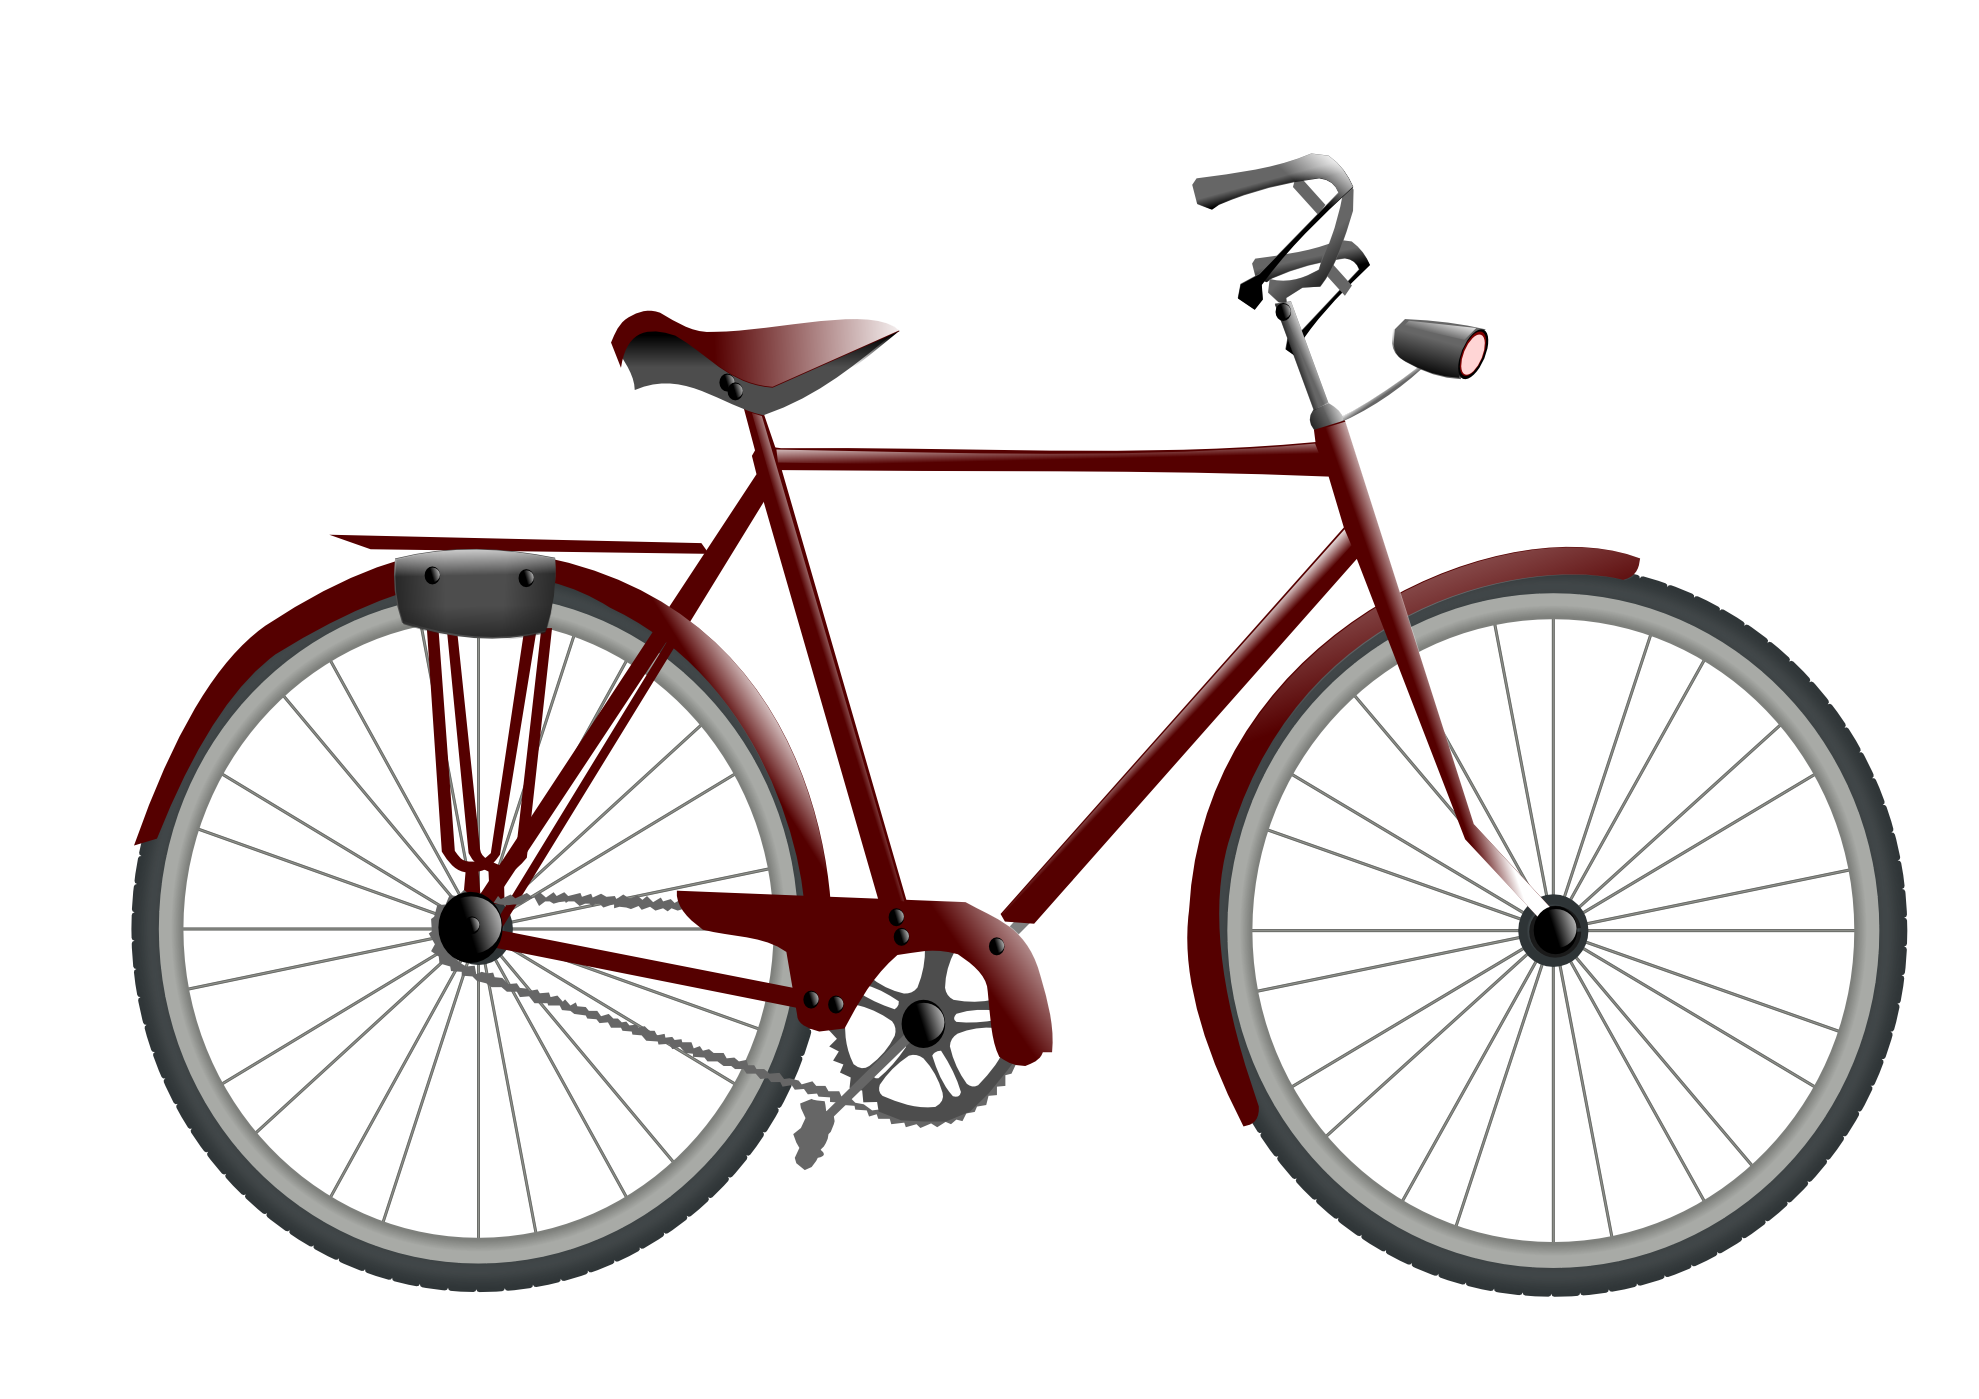 Drawn Bicycle Design 544.06 Kb